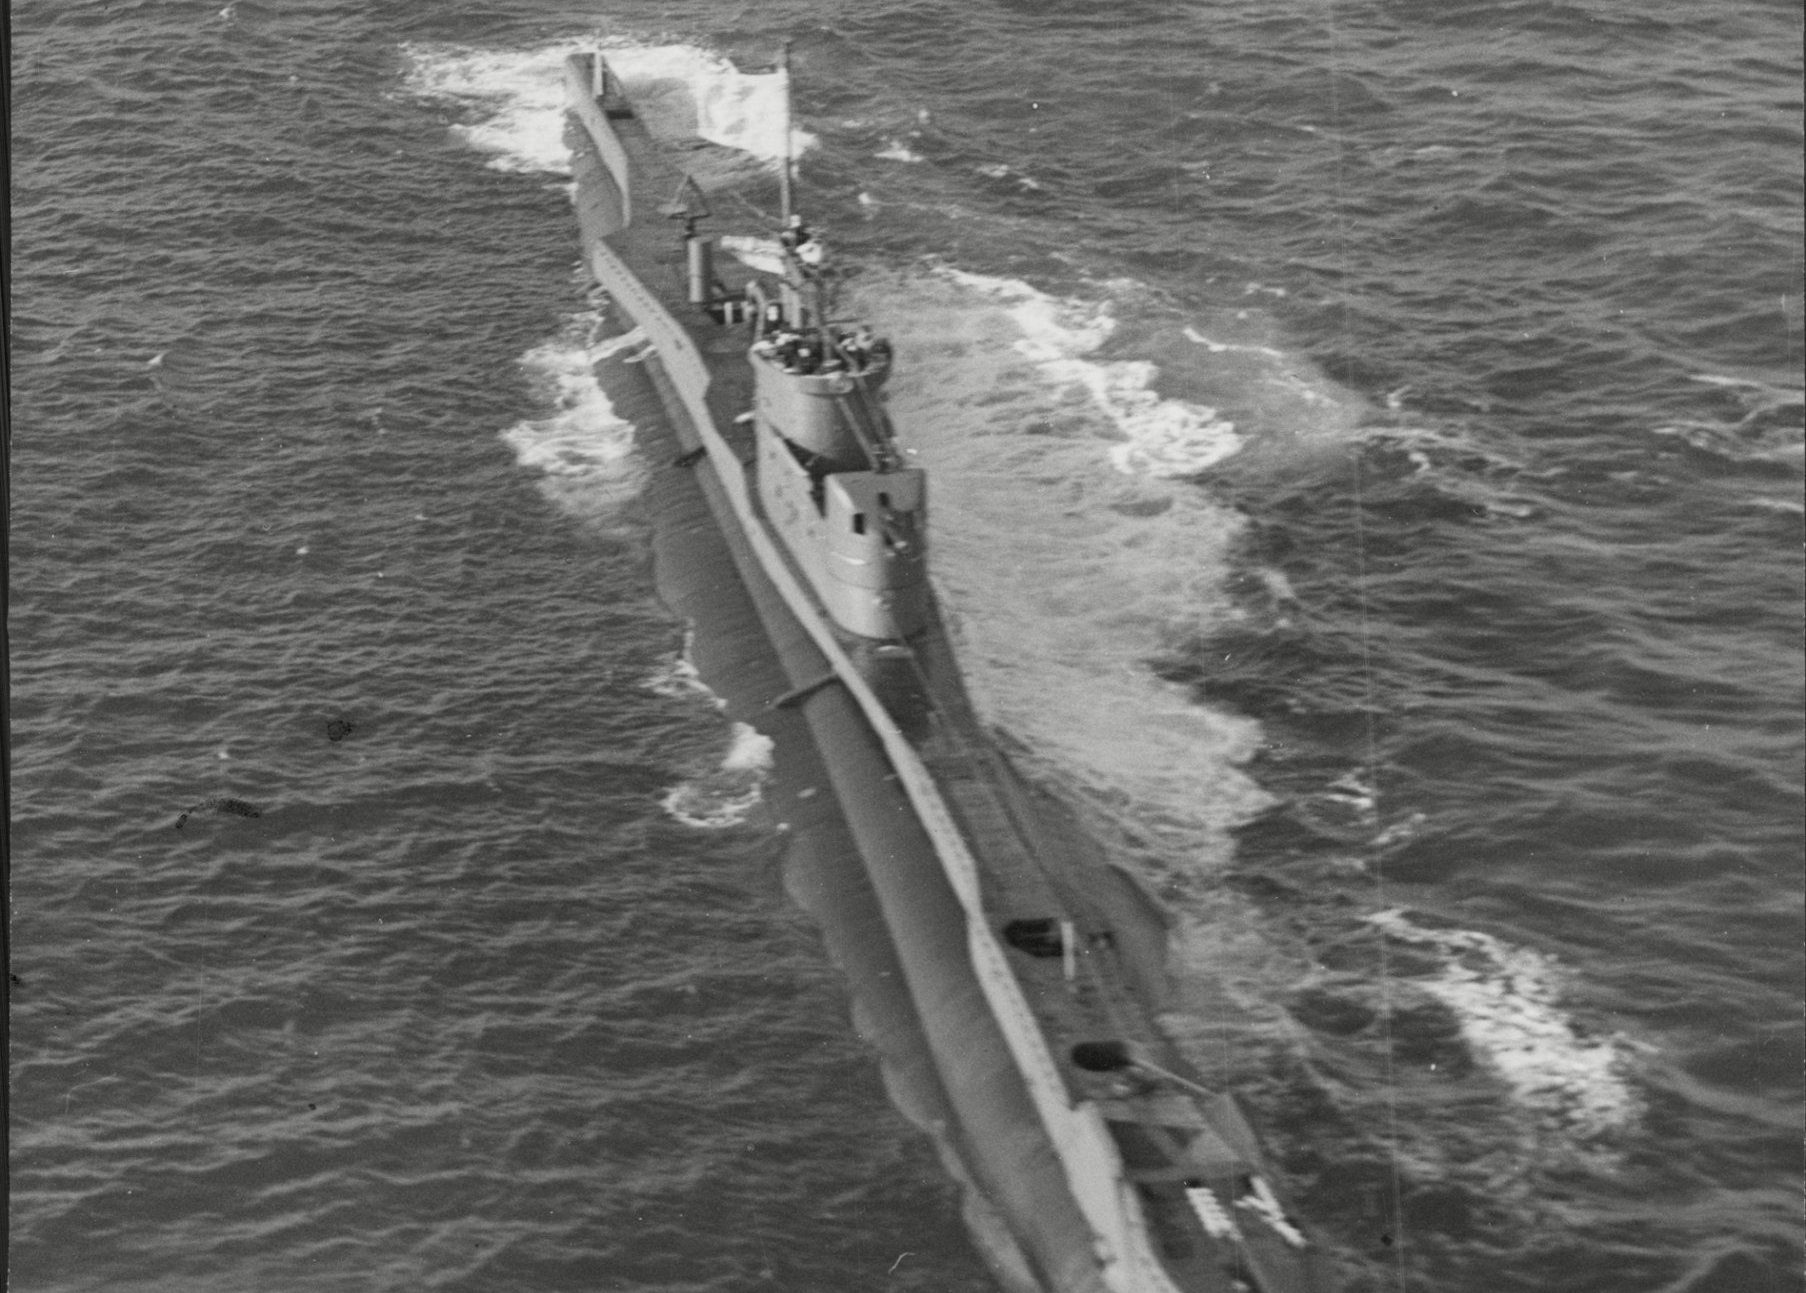 Mandatory Credit: Photo by ANL/REX/Shutterstock (2586560a)nHms Trespasser Royal Navy T Class Submarine Seen During Search For Hms Affray Hms Trespasser Was A British Submarine Of The Third Group Of The T Class. She Was Built As P312 By Vickers Armstrong Barrow And Launched On 29 May 1942. So Far She Has Been The Only Ship Of The Royal Navy To Bear The Name Trespasser. She Was One Of Only Two T-class Submarines Completed Without An Oerlikon 20 Mm Anti-aircraft Gun The Other Being Hms P311.nHms Trespasser Royal Navy T Class Submarine Seen During Search For Hms Affray Hms Trespasser Was A British Submarine Of The Third Group Of The T Class. She Was Built As P312 By Vickers Armstrong Barrow And Launched On 29 May 1942. So Far She Has Beennn